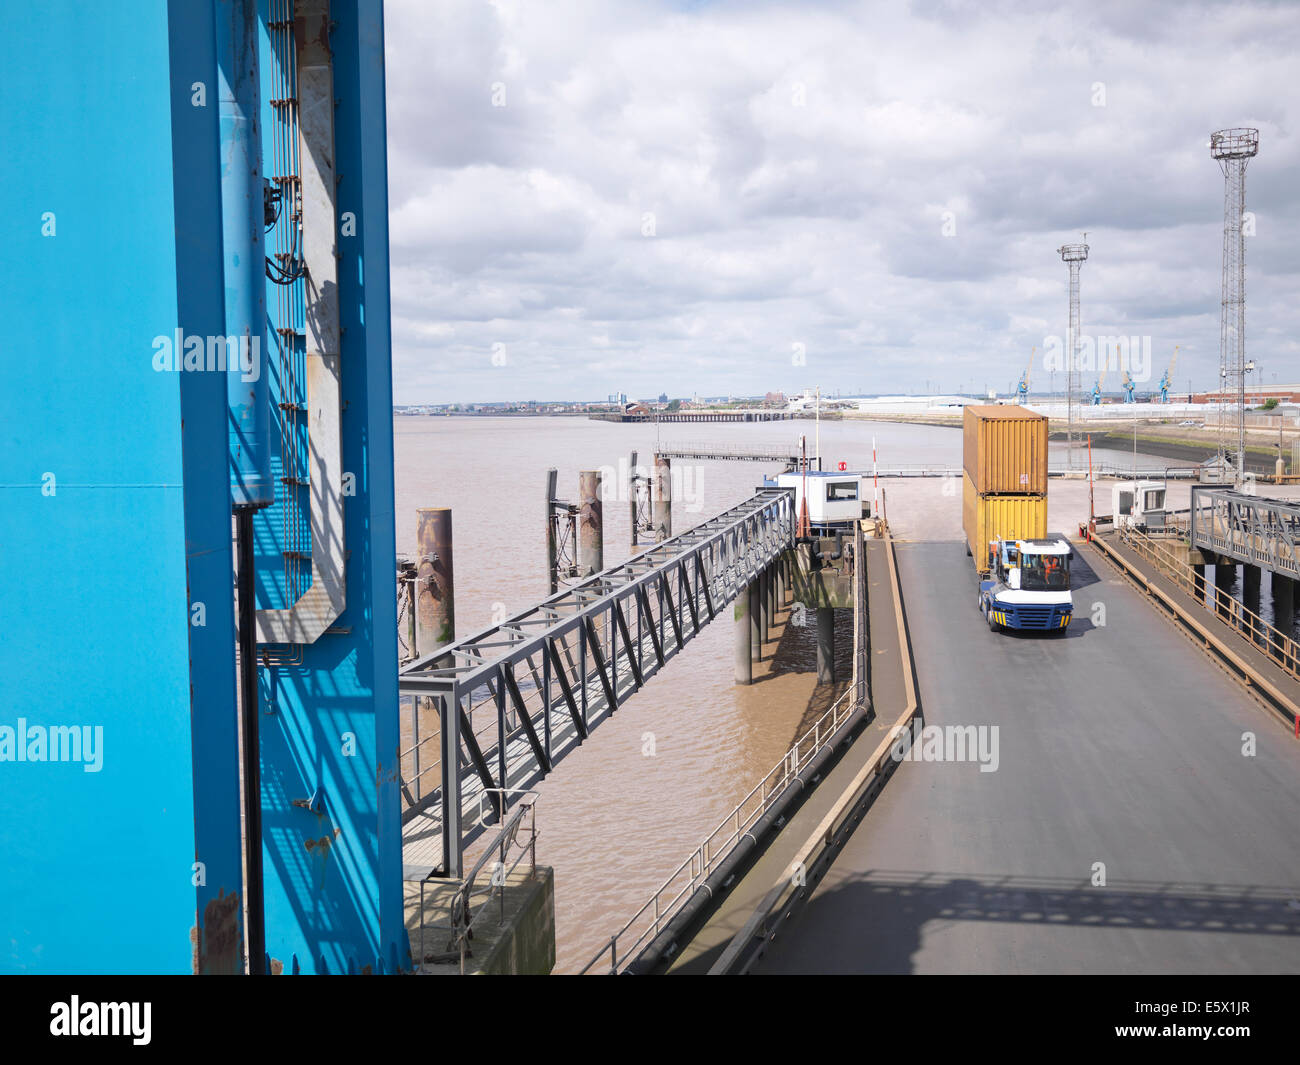 Shipping container and truck on ramp to ship, elevated view - Stock Image